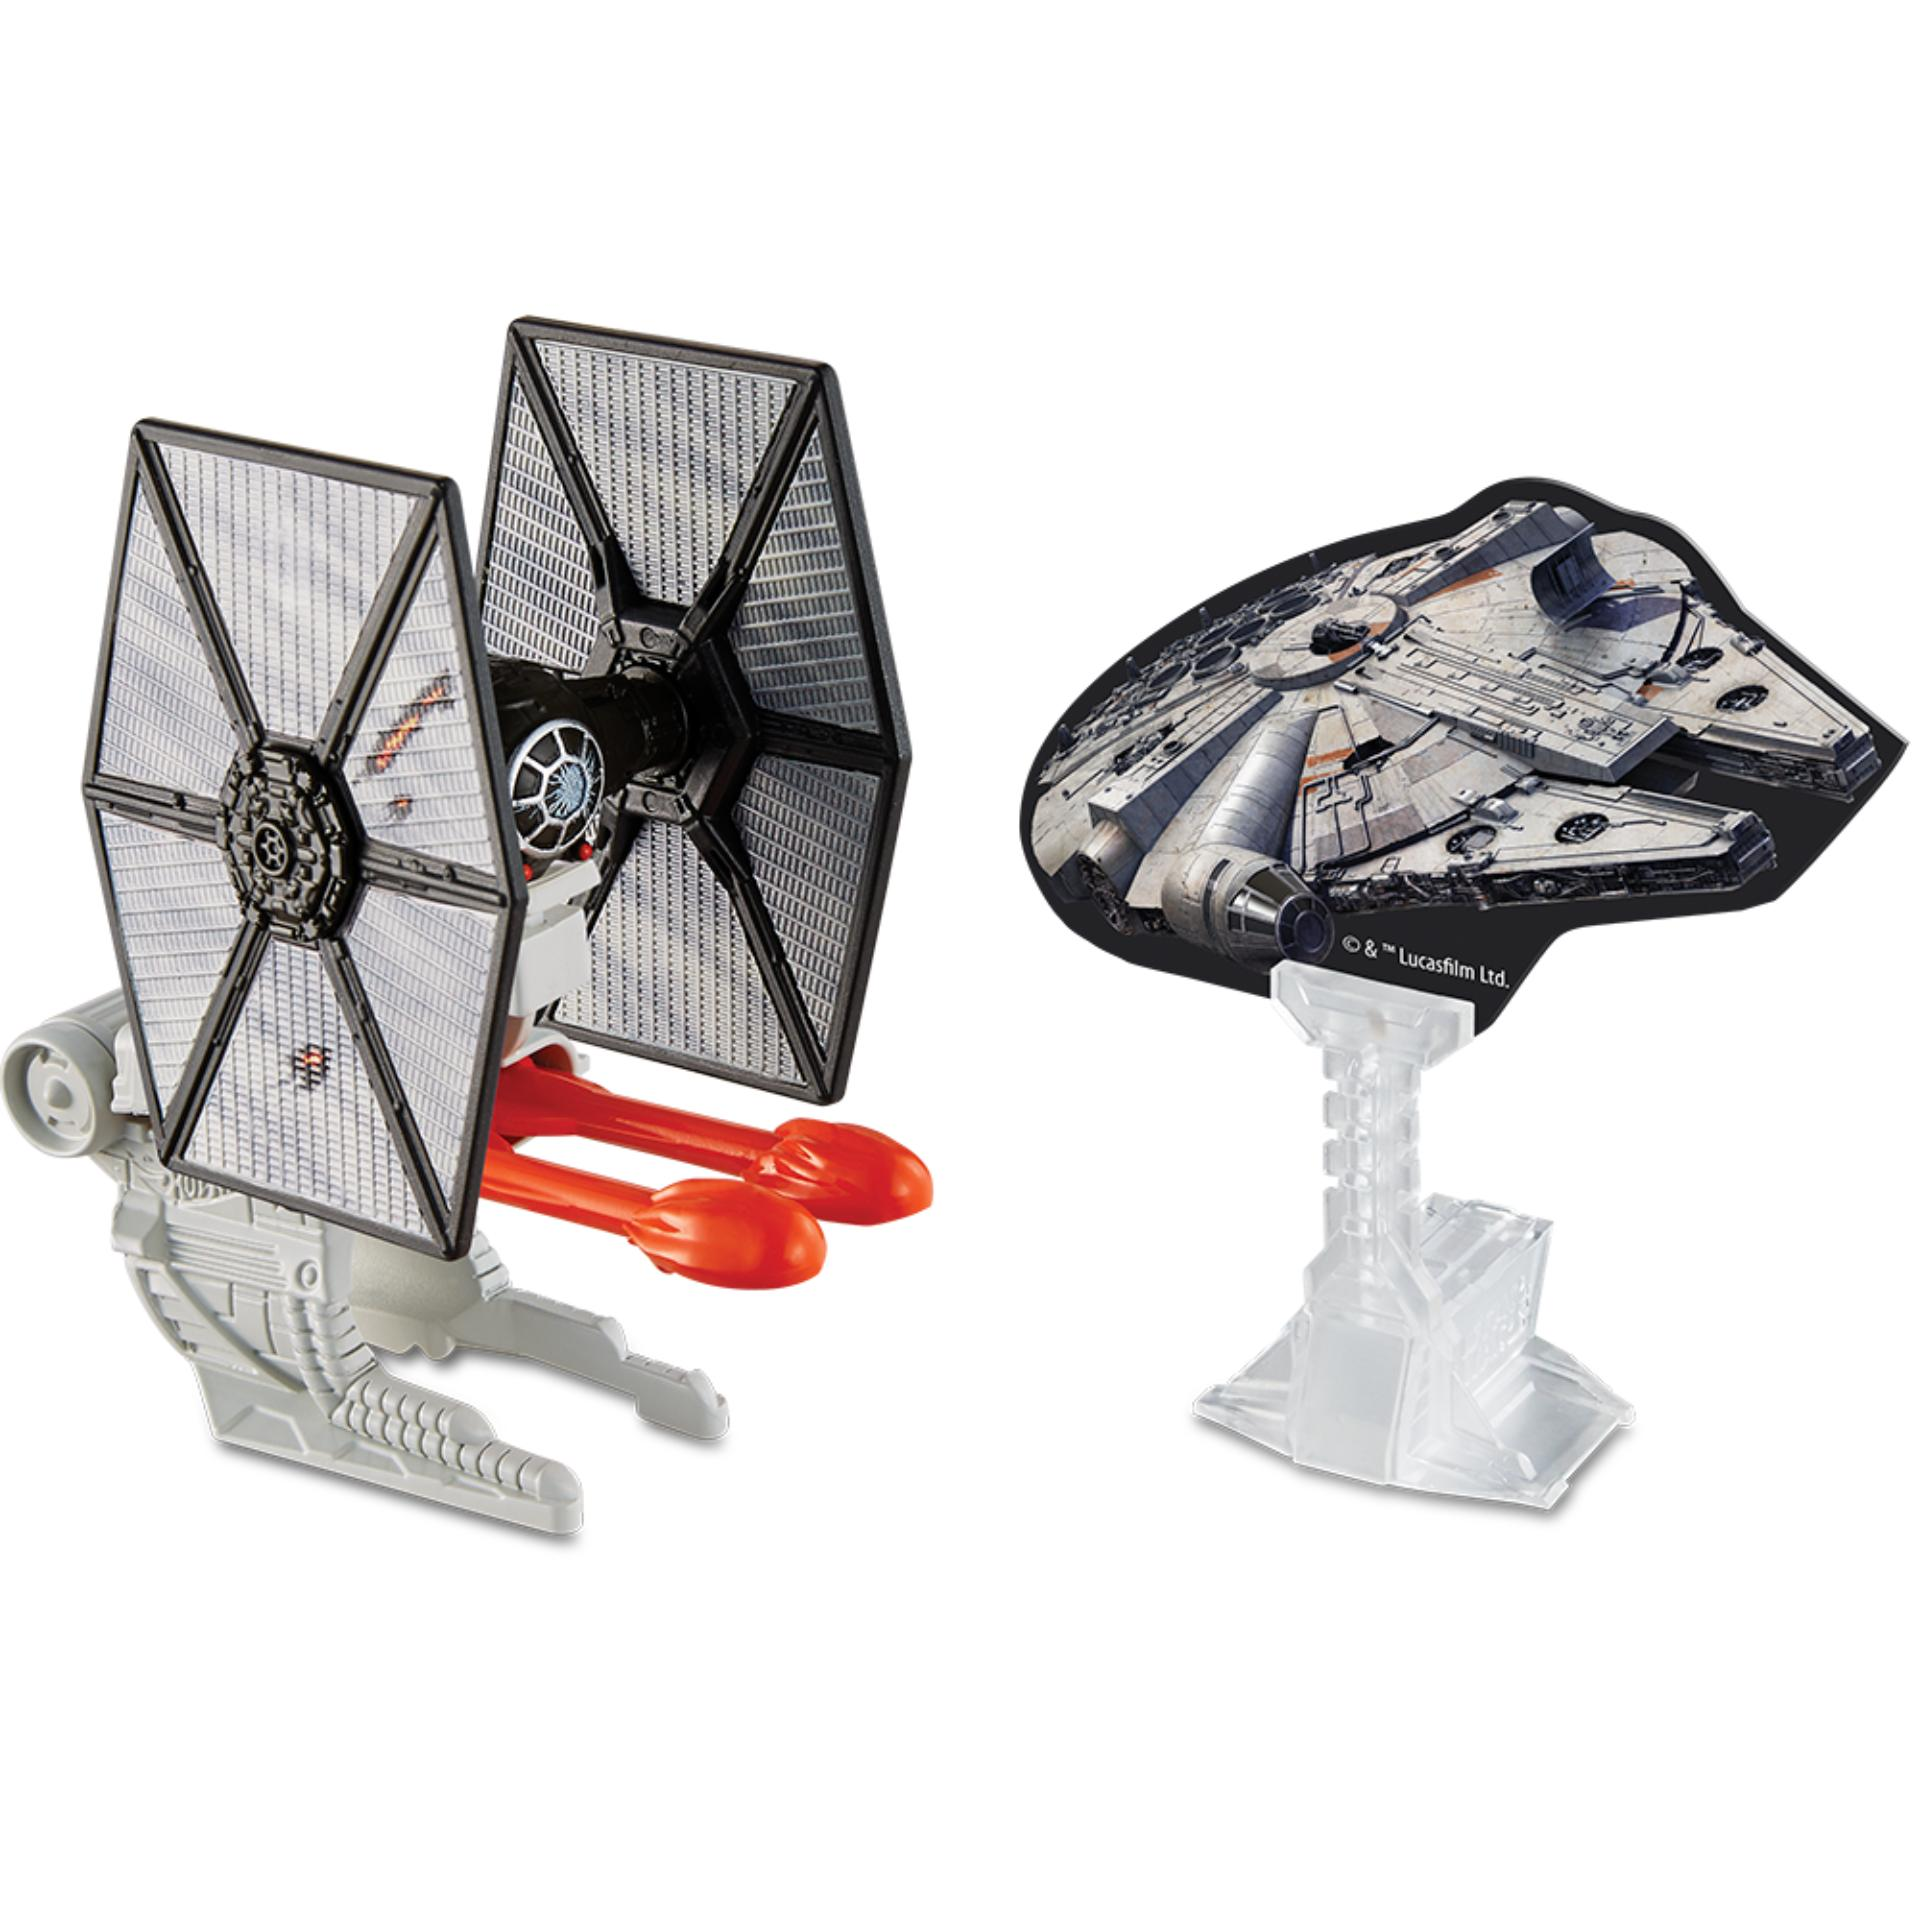 Diskon Hot Wheels™ Star Wars™ Blast Attack Starship Vehicle Episode 7 Villain Starfighter Battle Damage